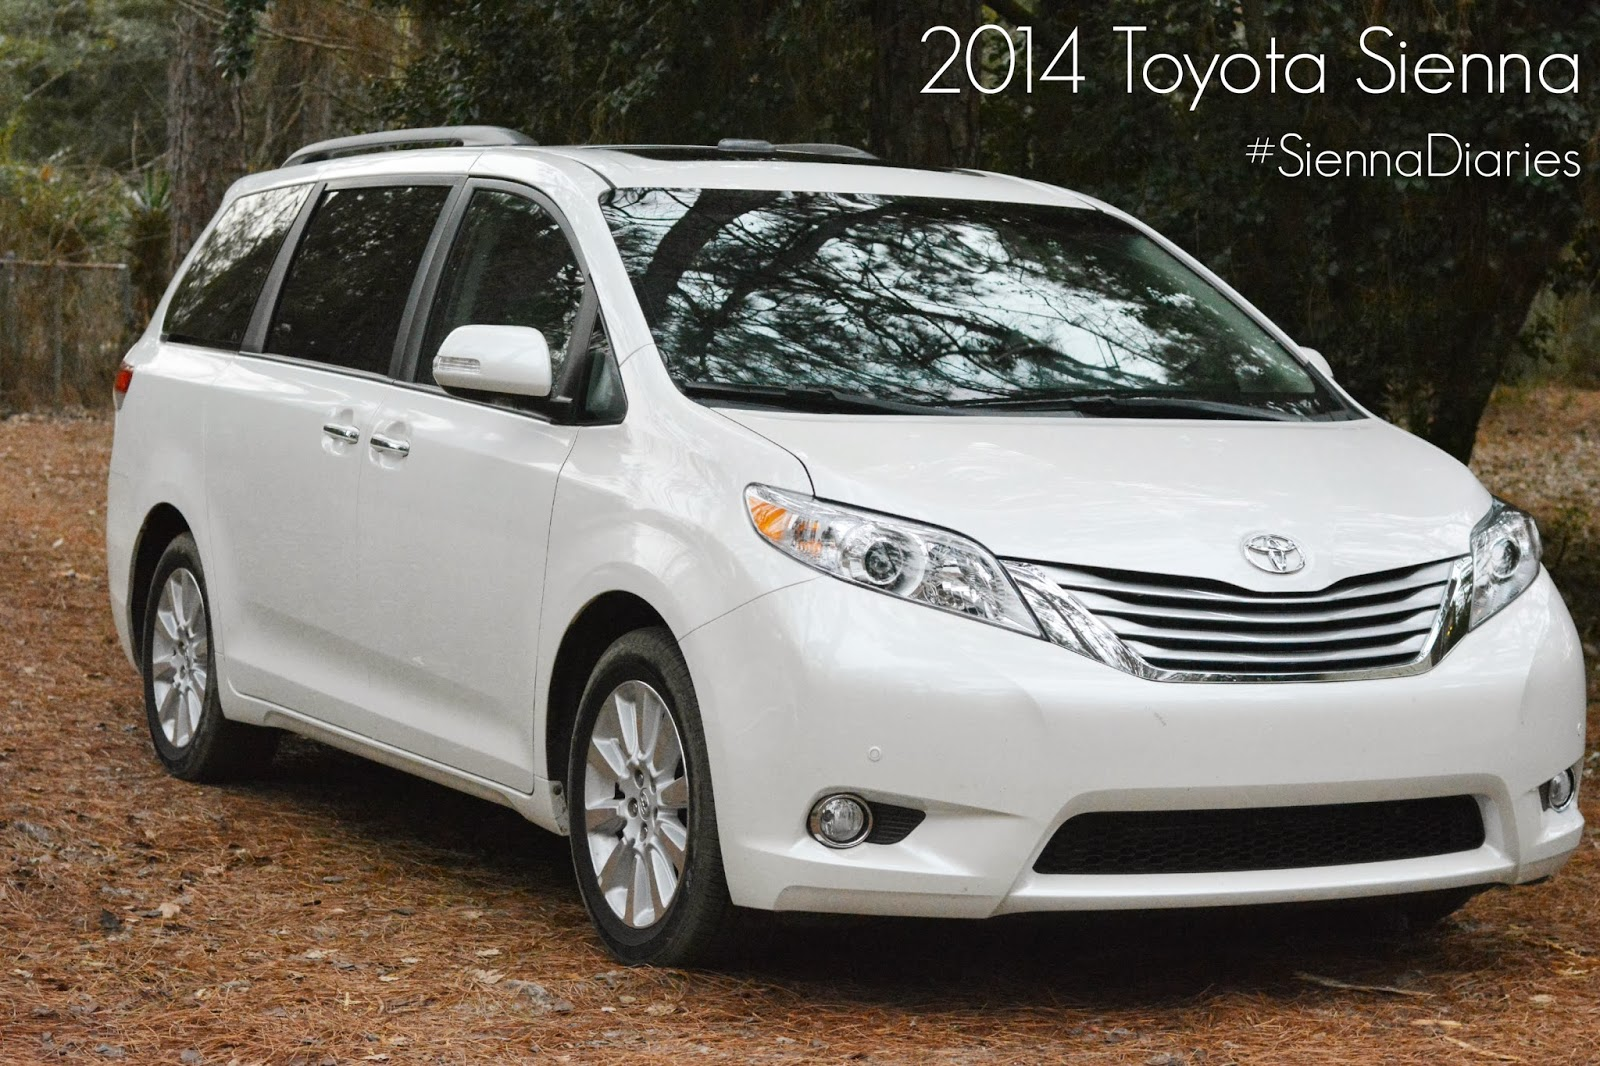 life with 4 boys 2014 toyota sienna it 39 s like a couch on wheels siennadiaries. Black Bedroom Furniture Sets. Home Design Ideas